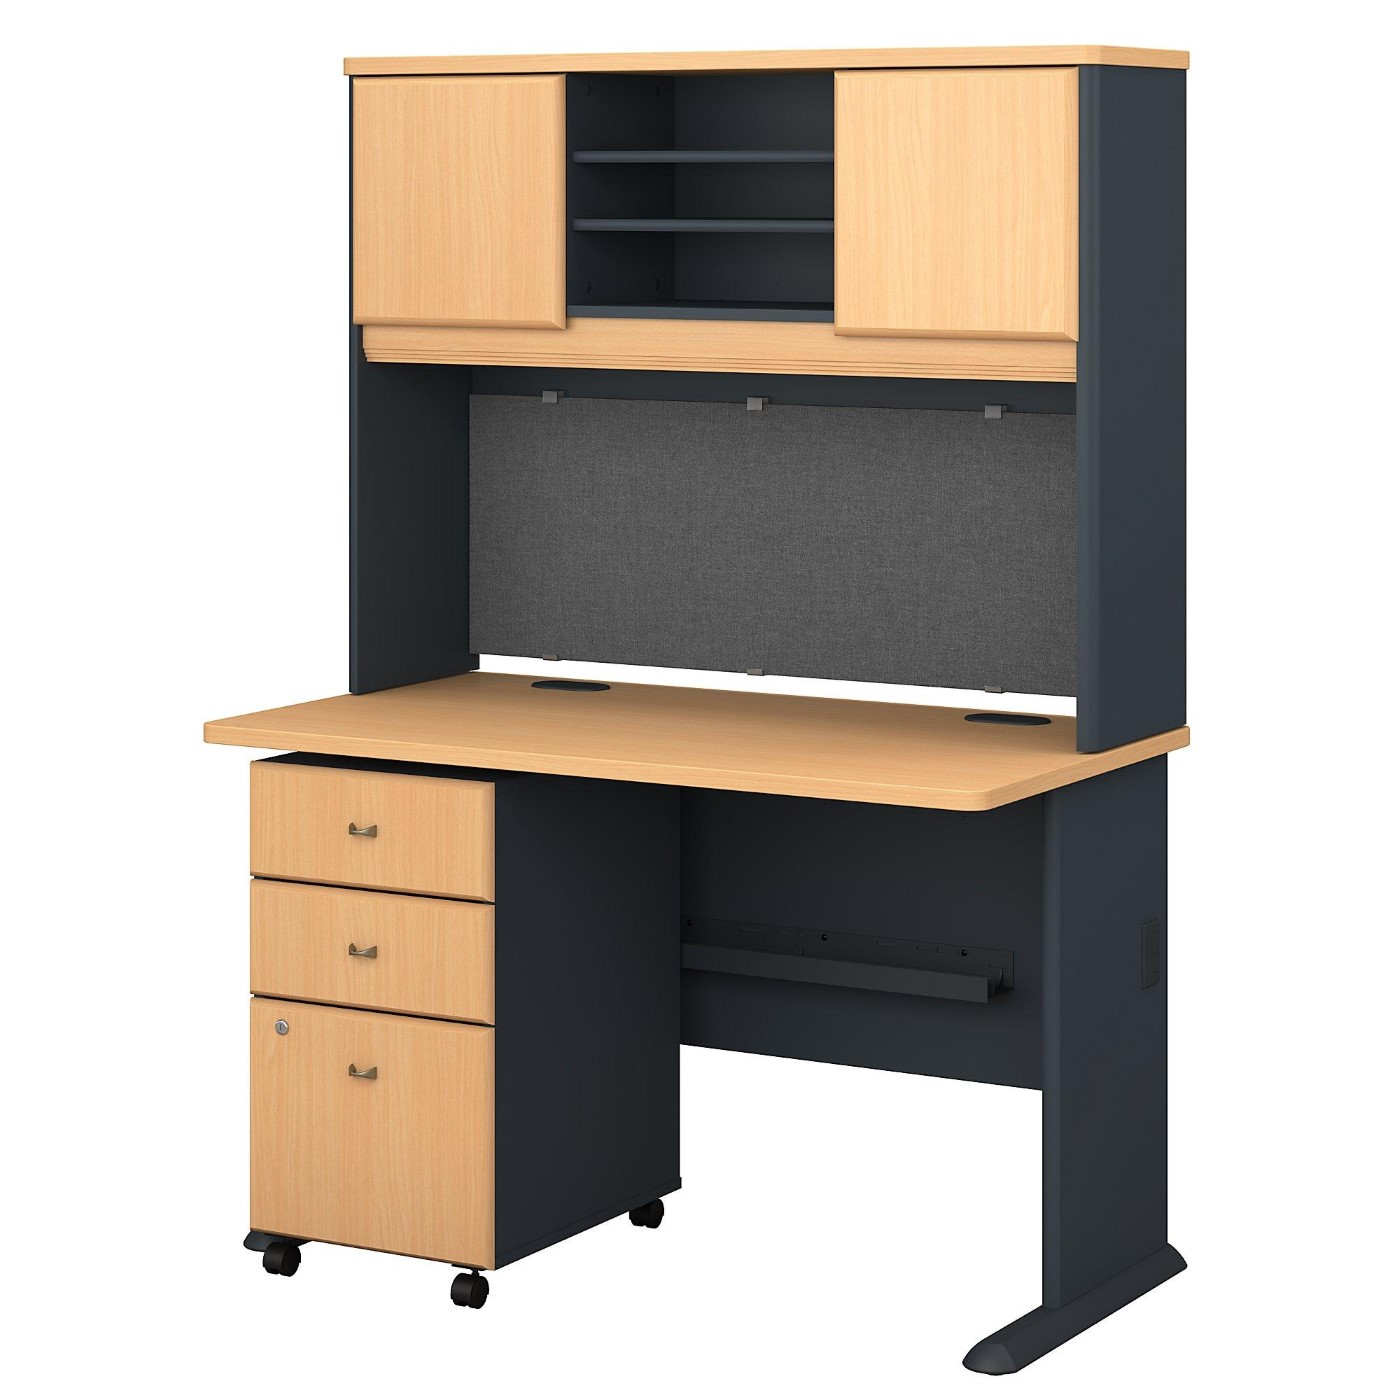 </b></font><b>BUSH BUSINESS FURNITURE SERIES A 48W DESK WITH HUTCH AND MOBILE FILE CABINET. FREE SHIPPING</font>. </b></font></b>